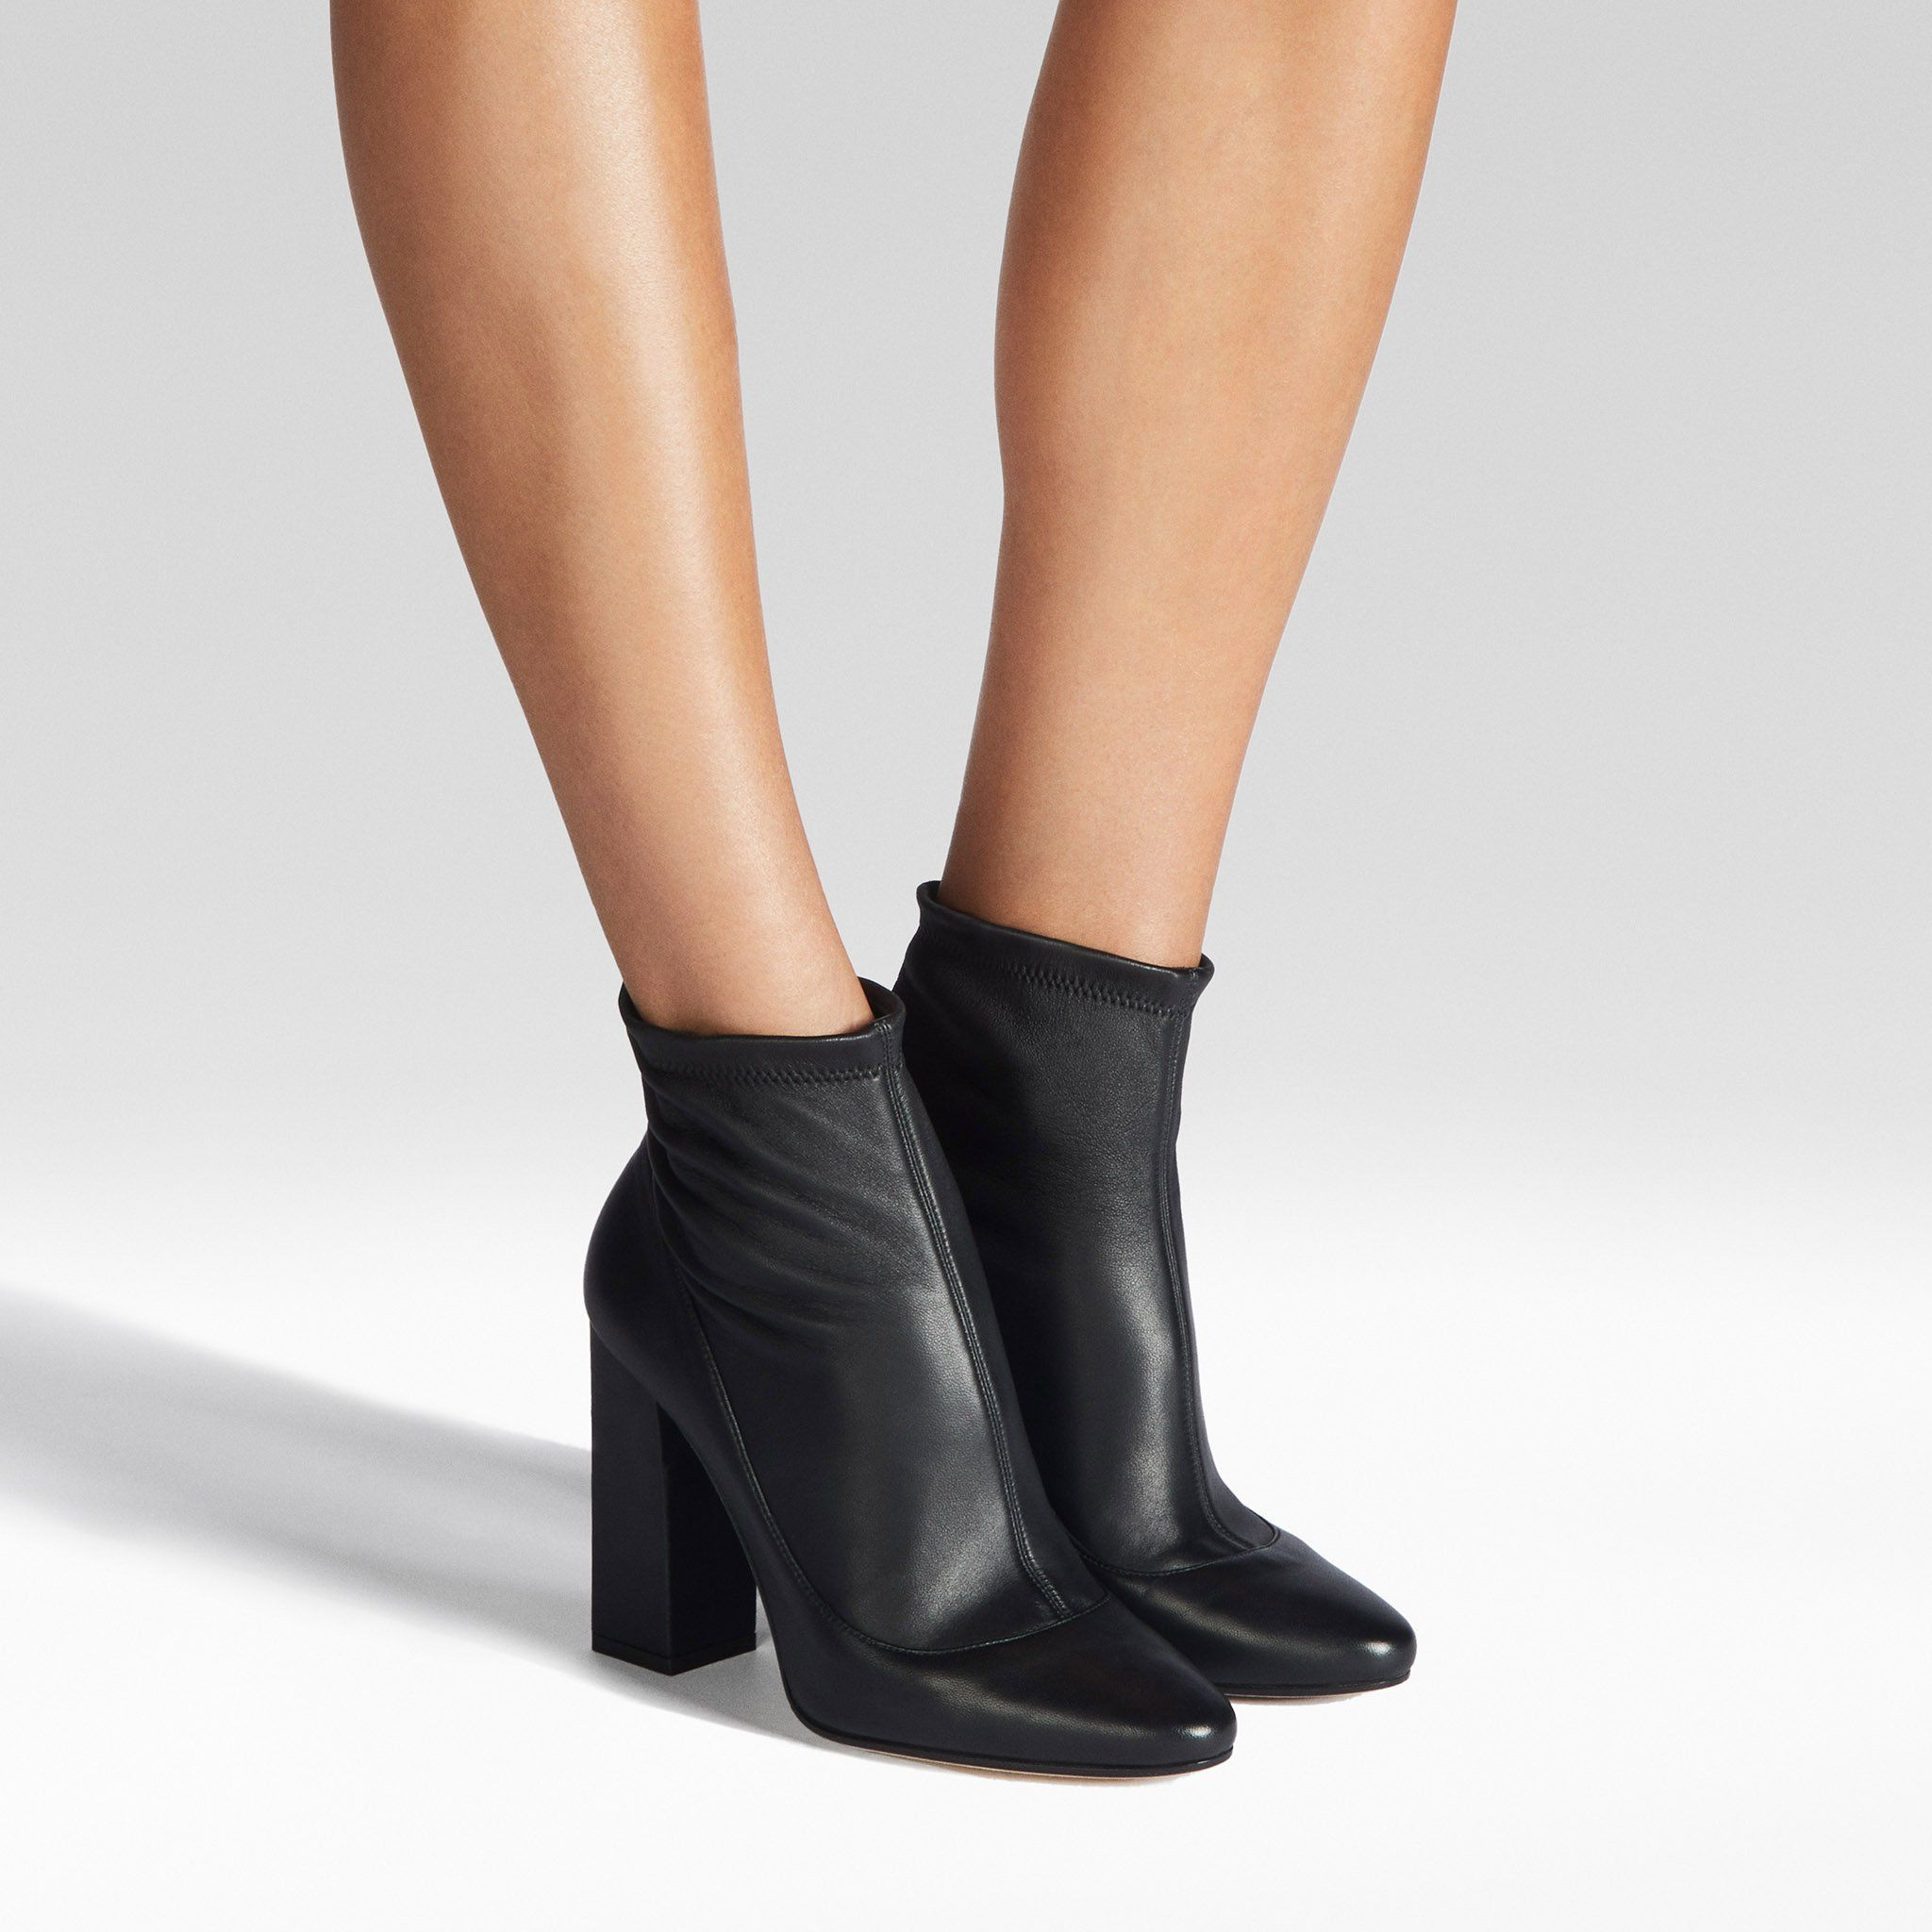 Tamara Mellon Stretch ankle boots